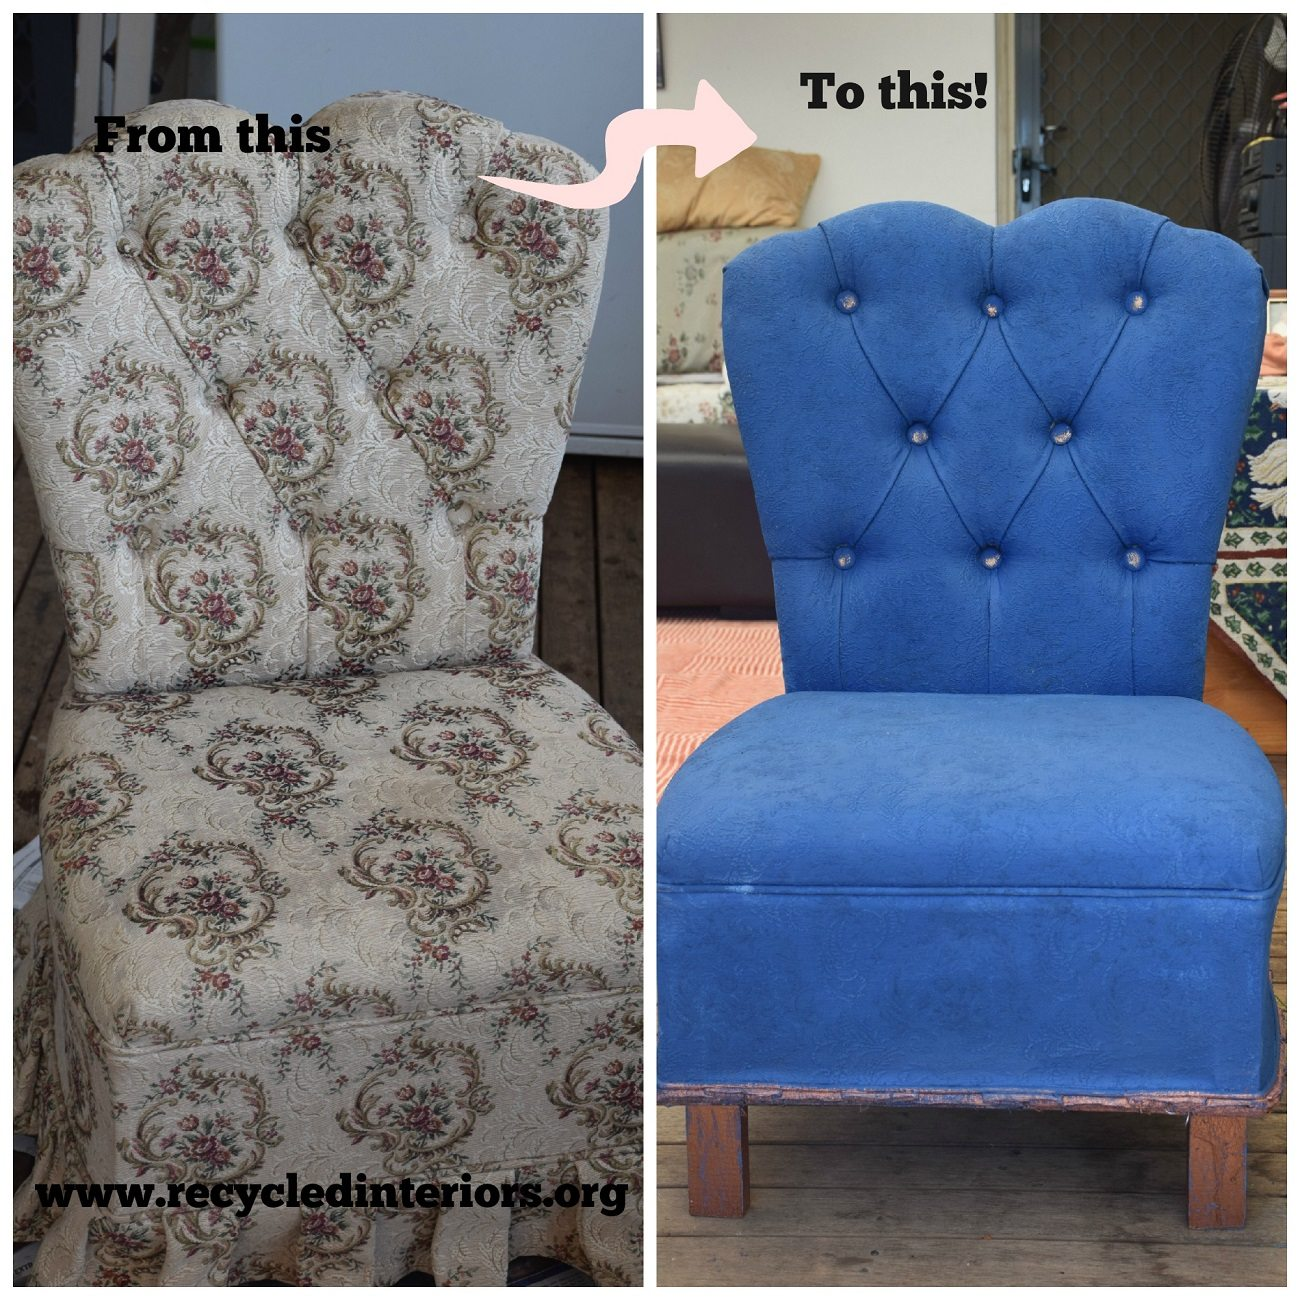 Upcycled Chair using chalk paint by annie sloan